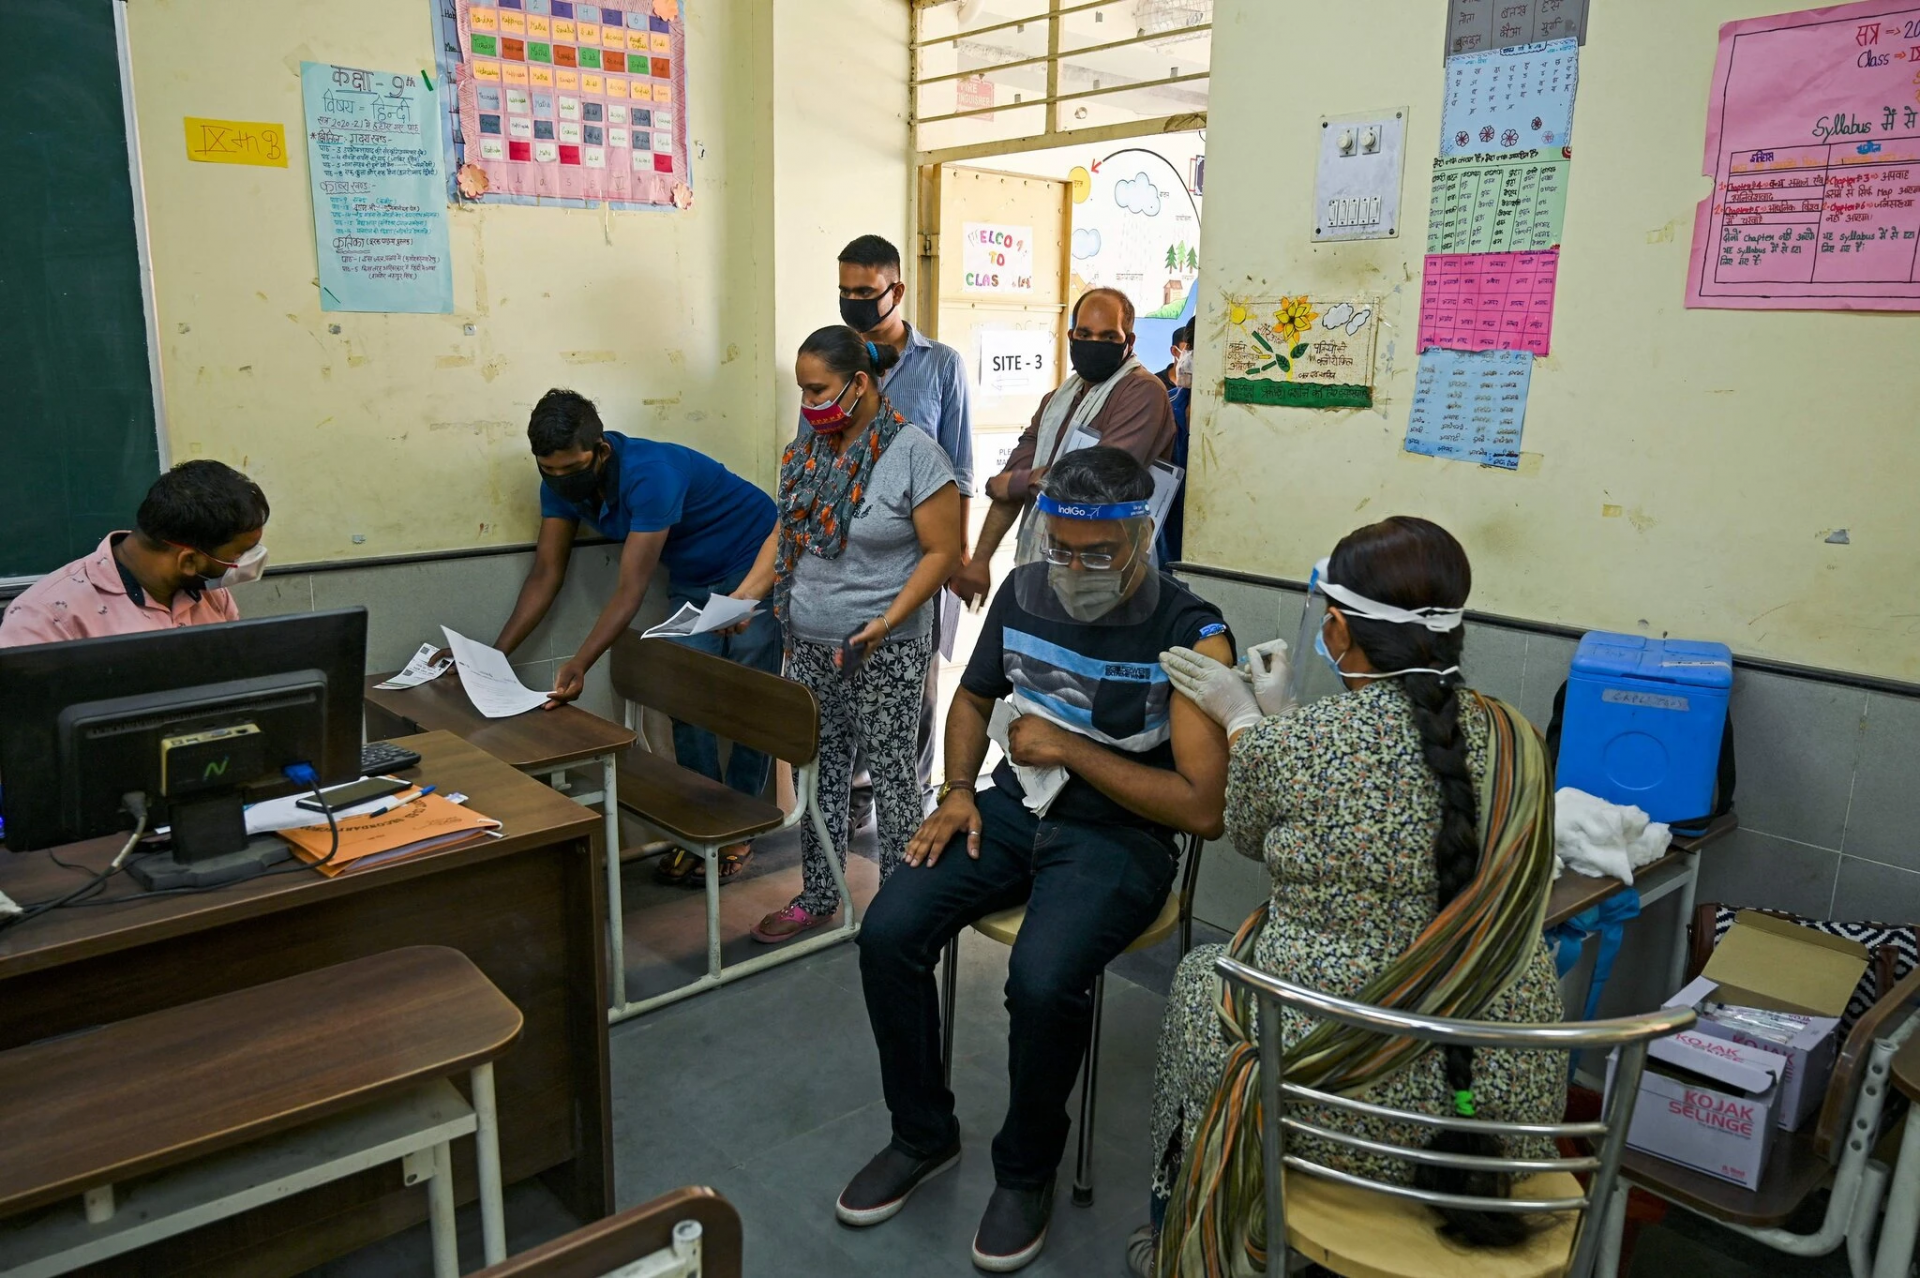 A vaccination center at a school in New Delhi on Wednesday. Credit...Tauseef Mustafa/Agence France-Presse — Getty Images